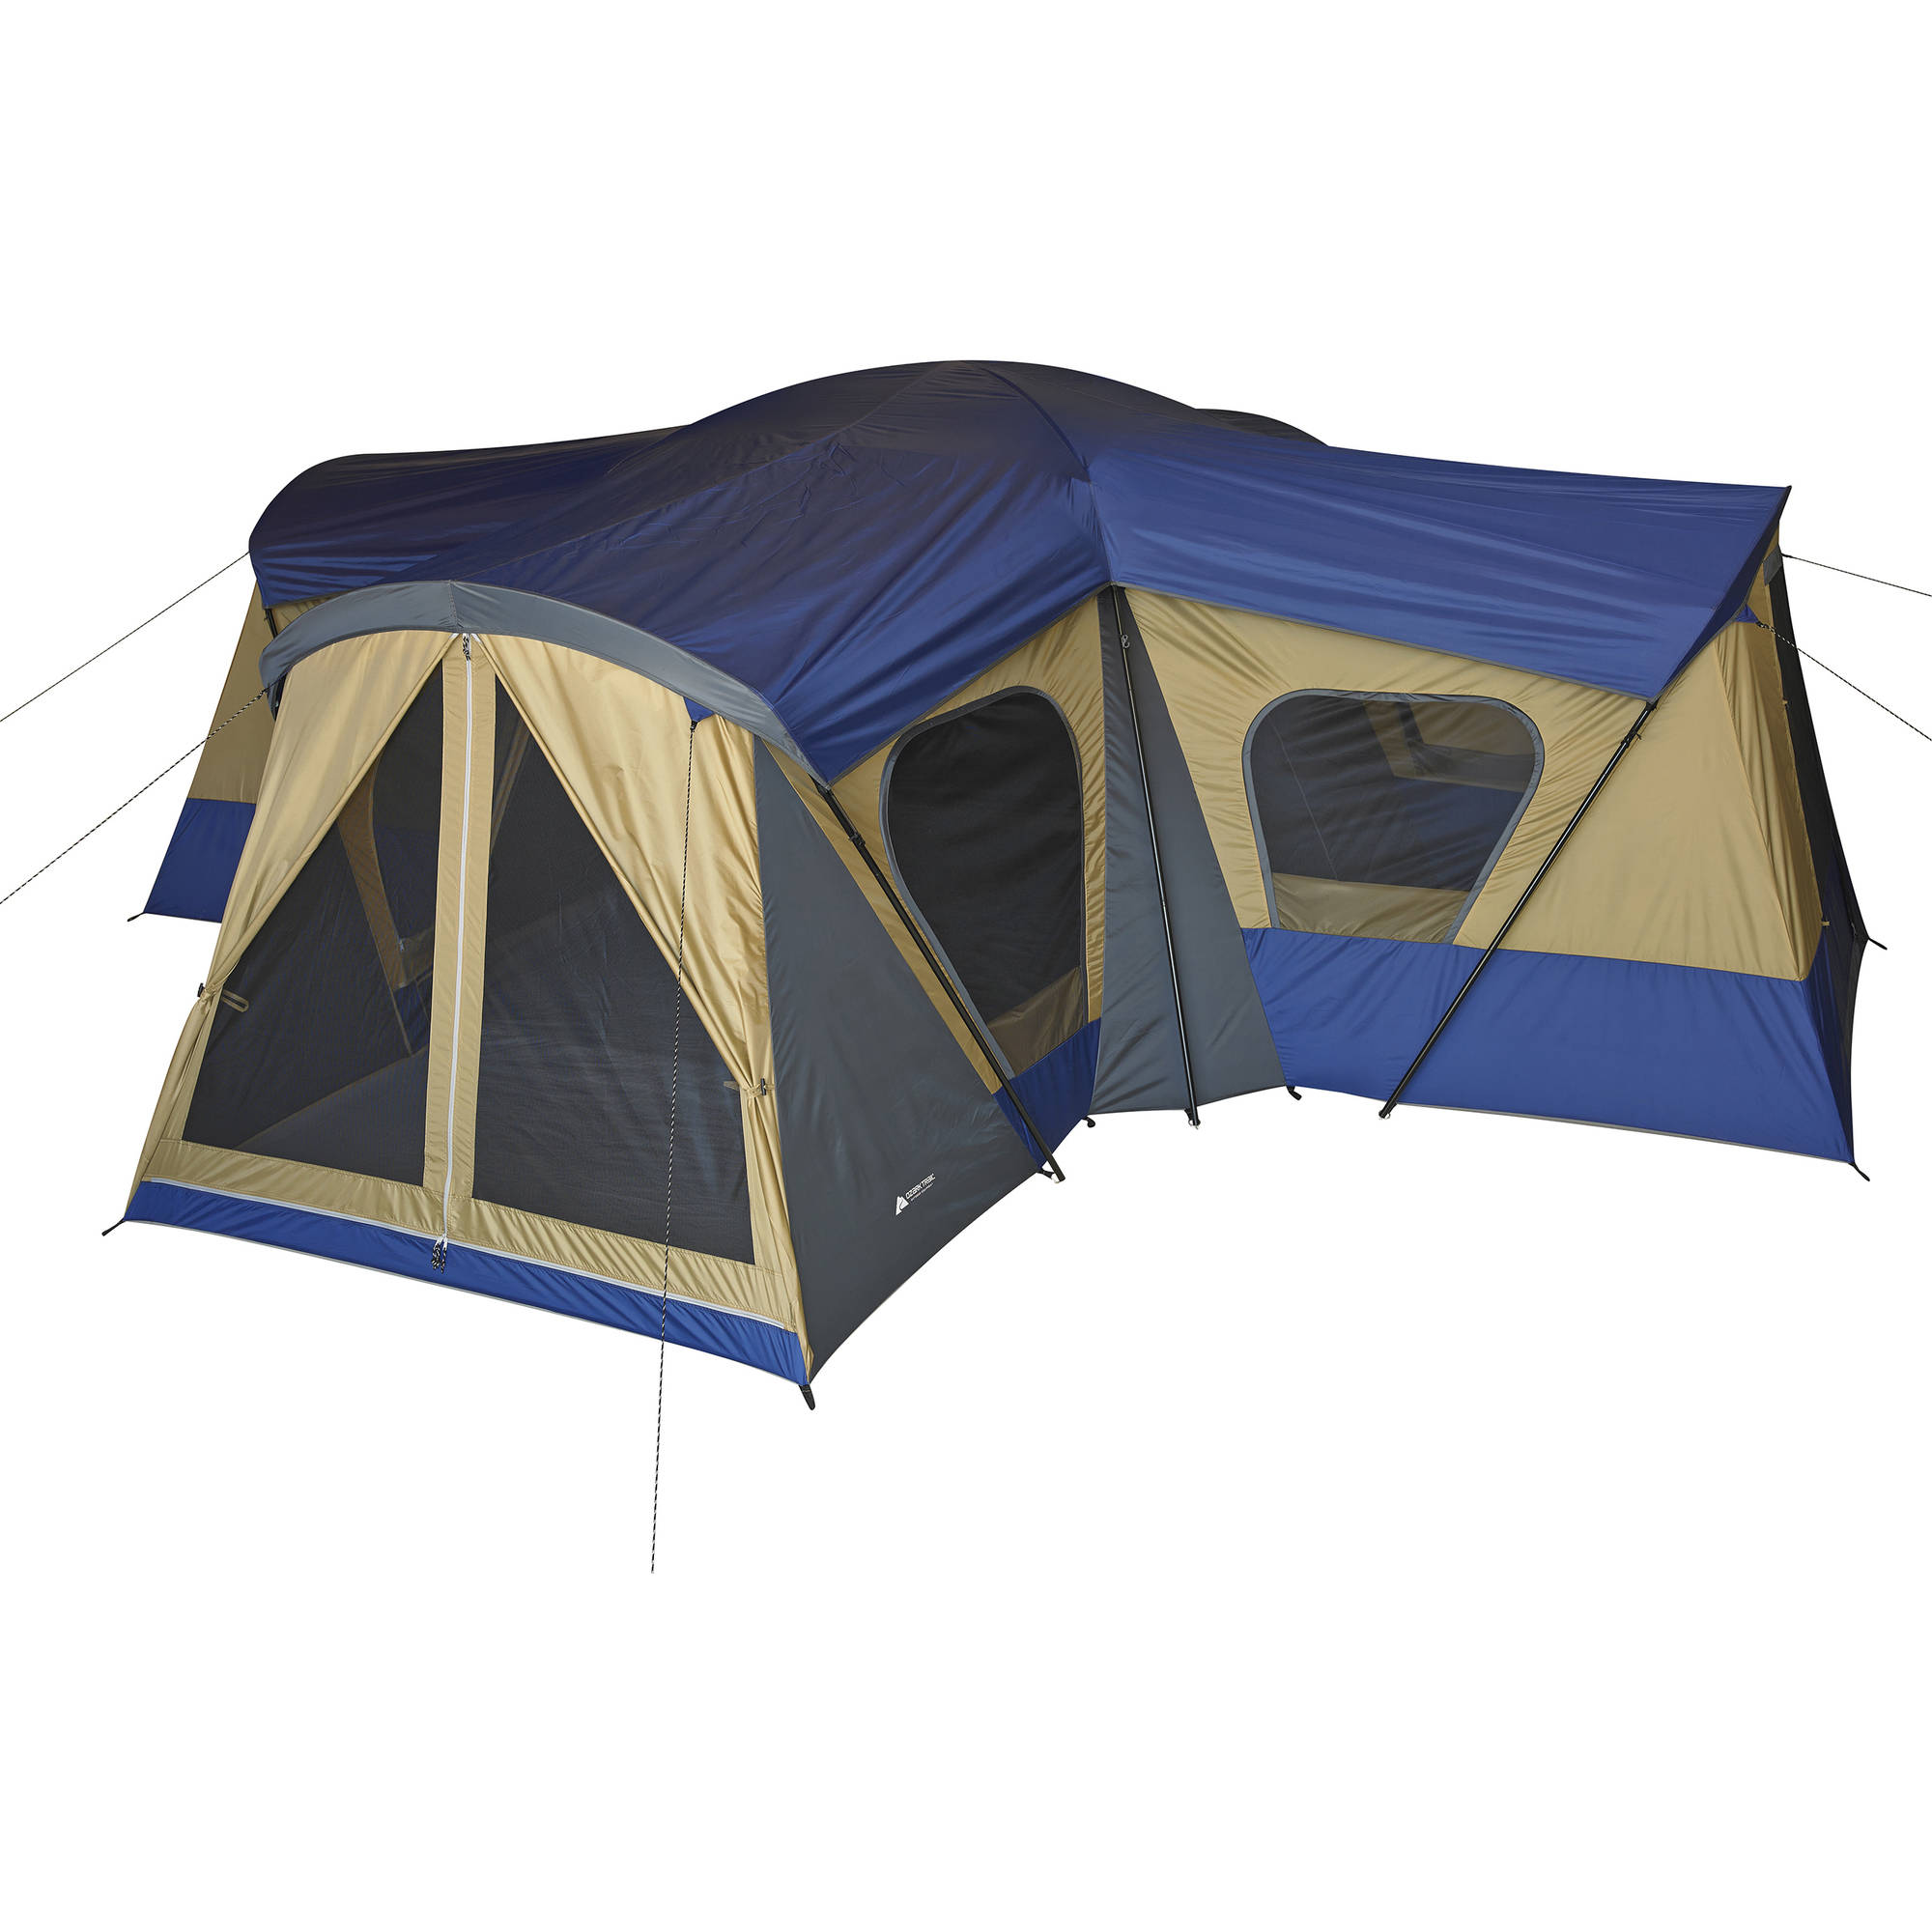 Ozark Trail 14 Person 4 Room Base Camp Tent With 4 Entrances